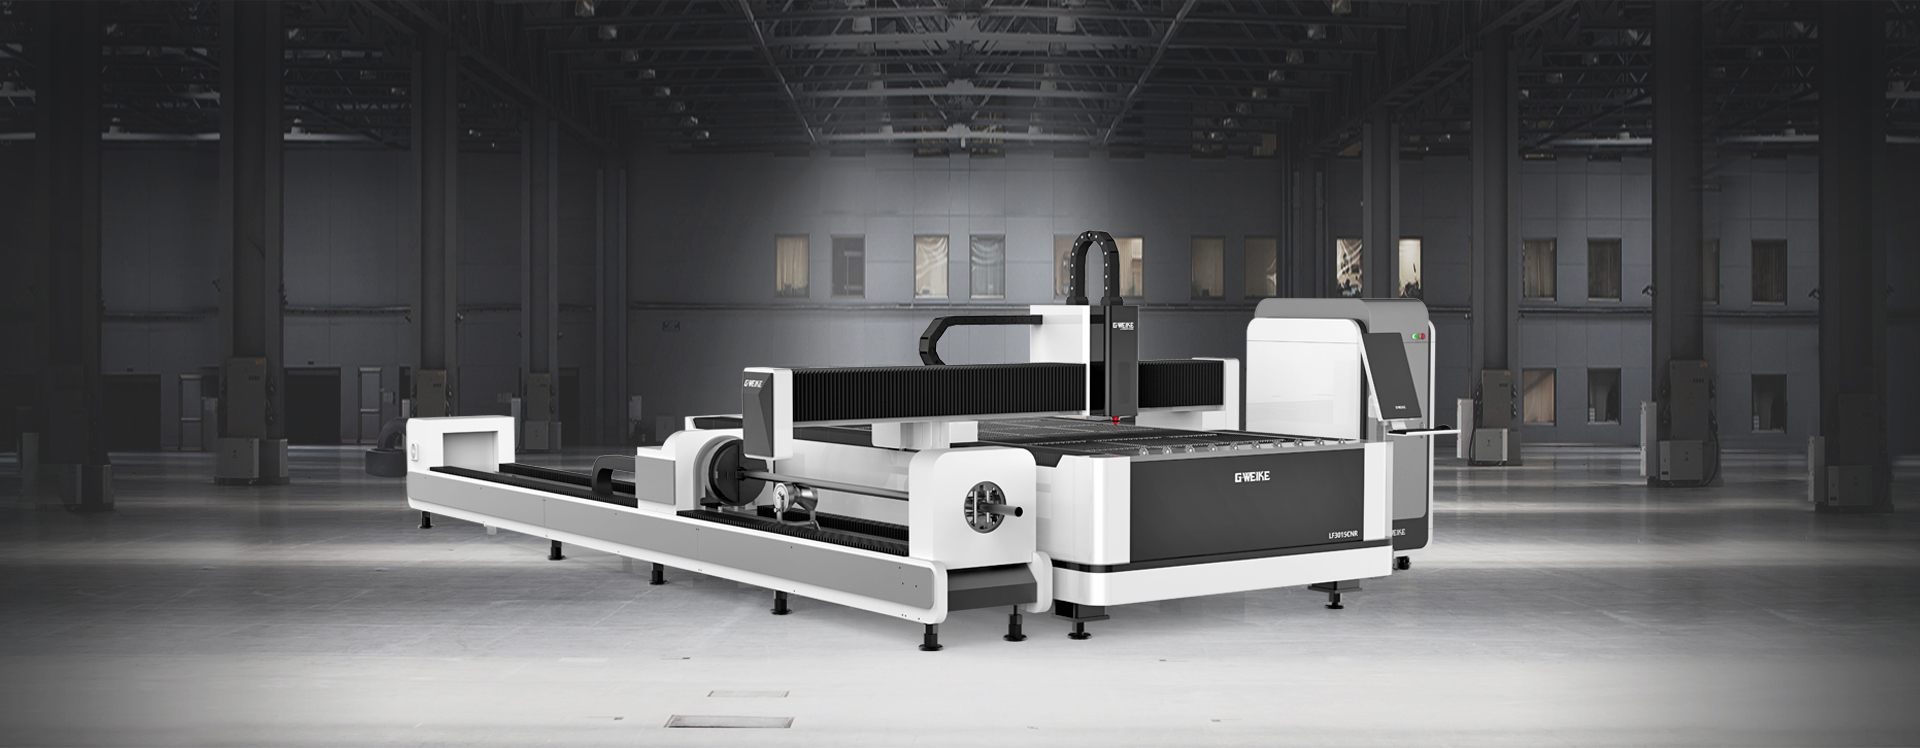 LF3015CR CNC PIPE & PLATE DUAL-USE FIBER LASER CUTTING MACHINE